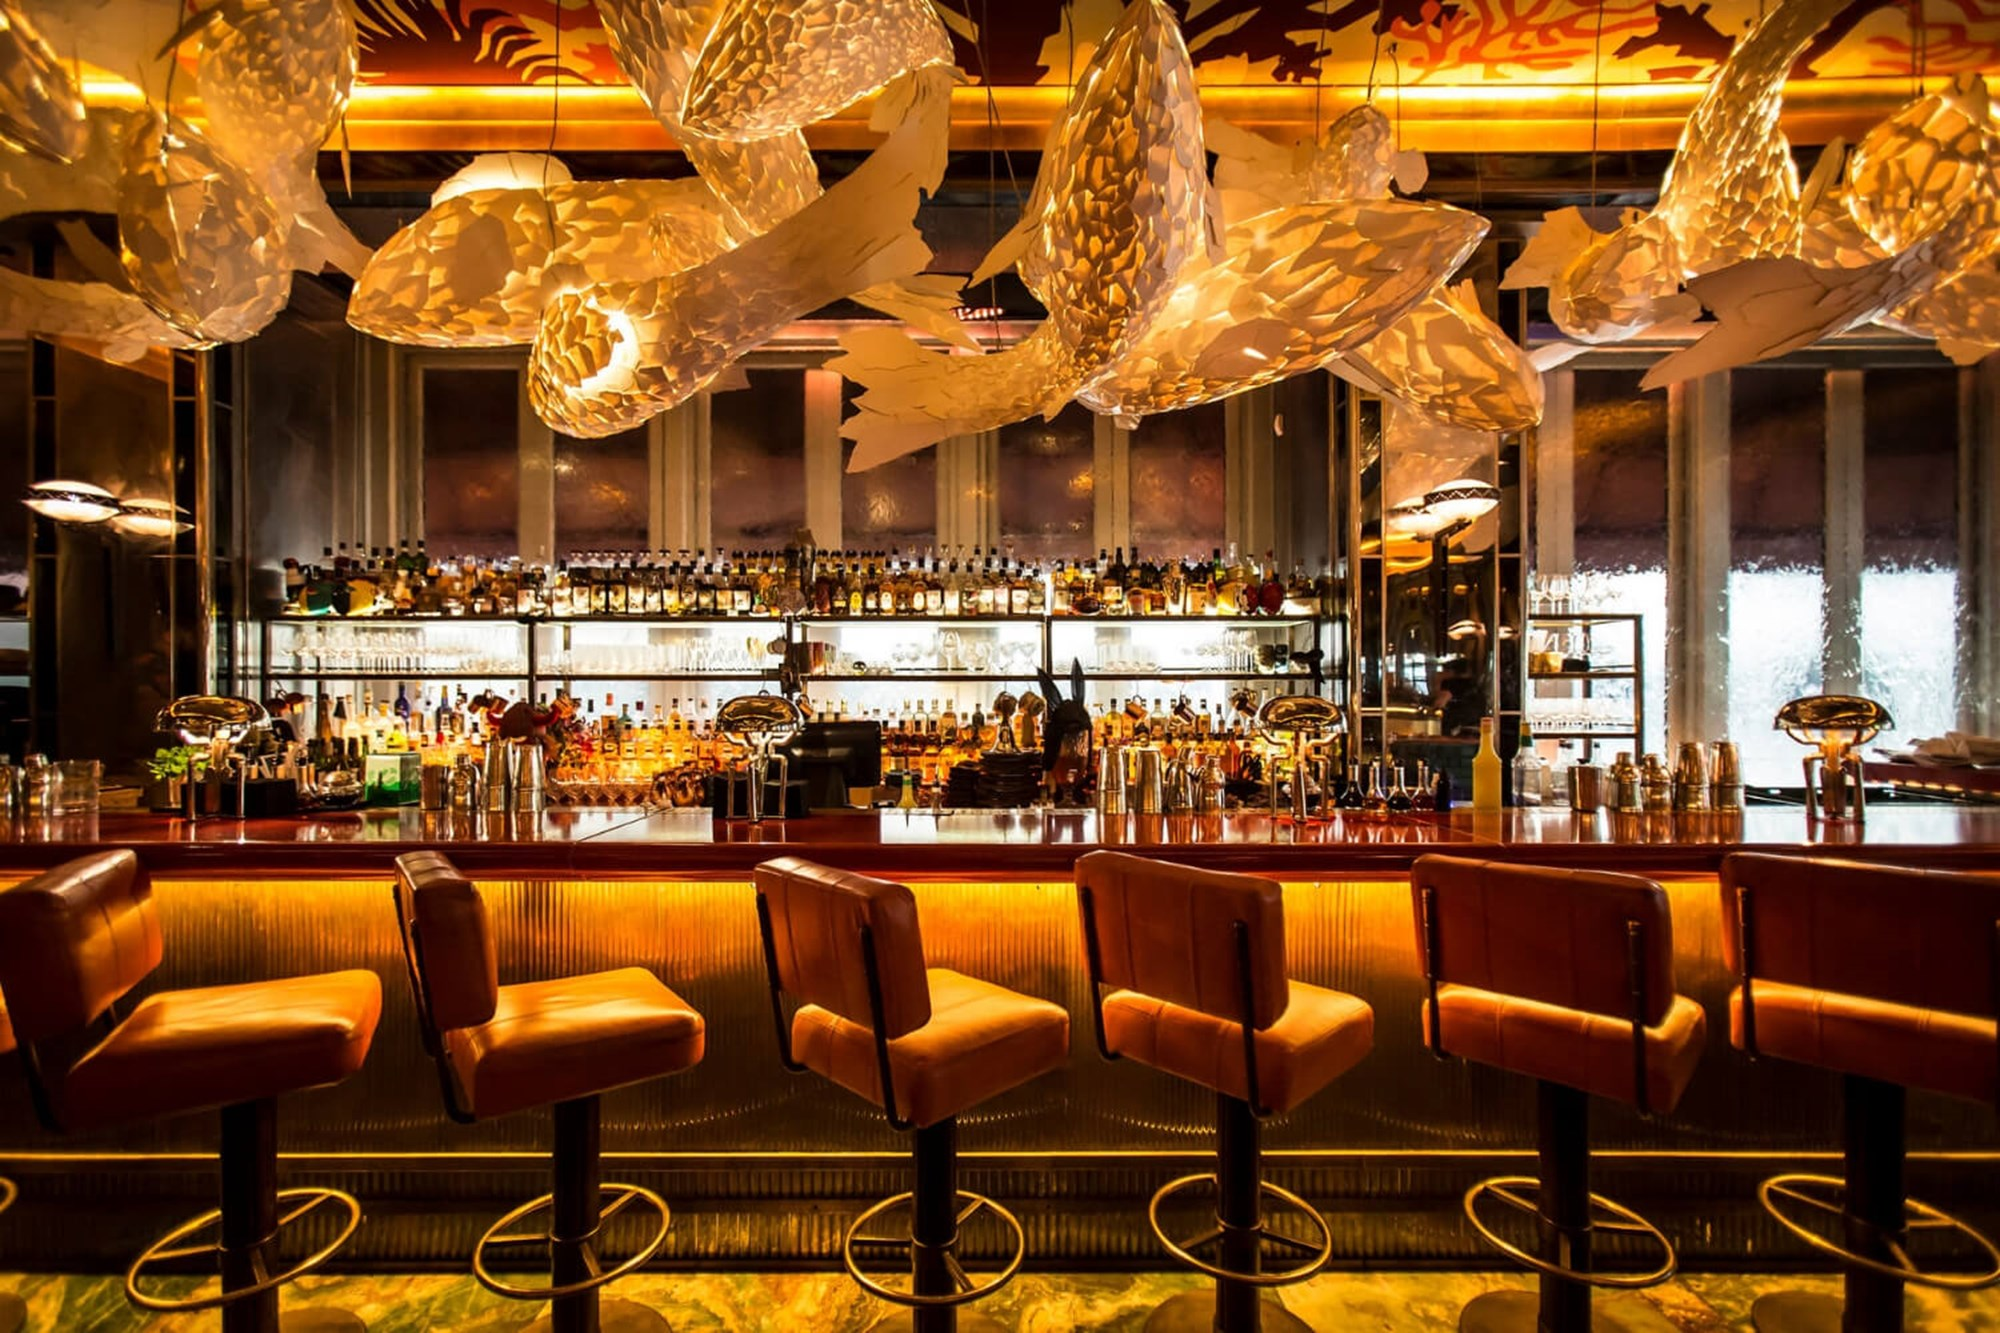 The Bar at Sexy Fish in Mayfair is open until late and holds the world's largest whisky collection